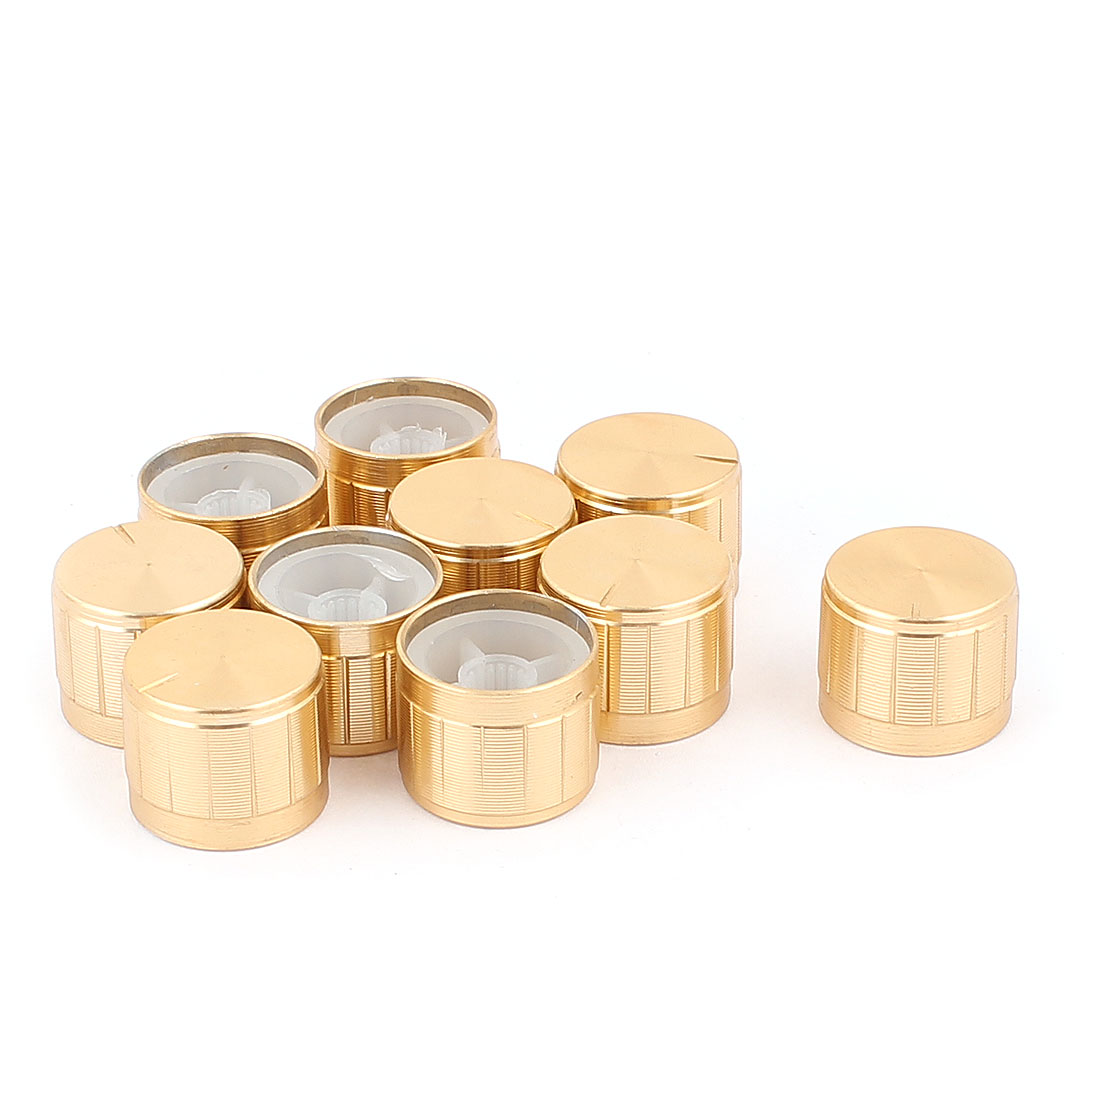 10 Pcs 21mm x 5.4mm Aluminium Alloy Potentiometer Control Knob Mini Cap Knurled Button Gold Tone